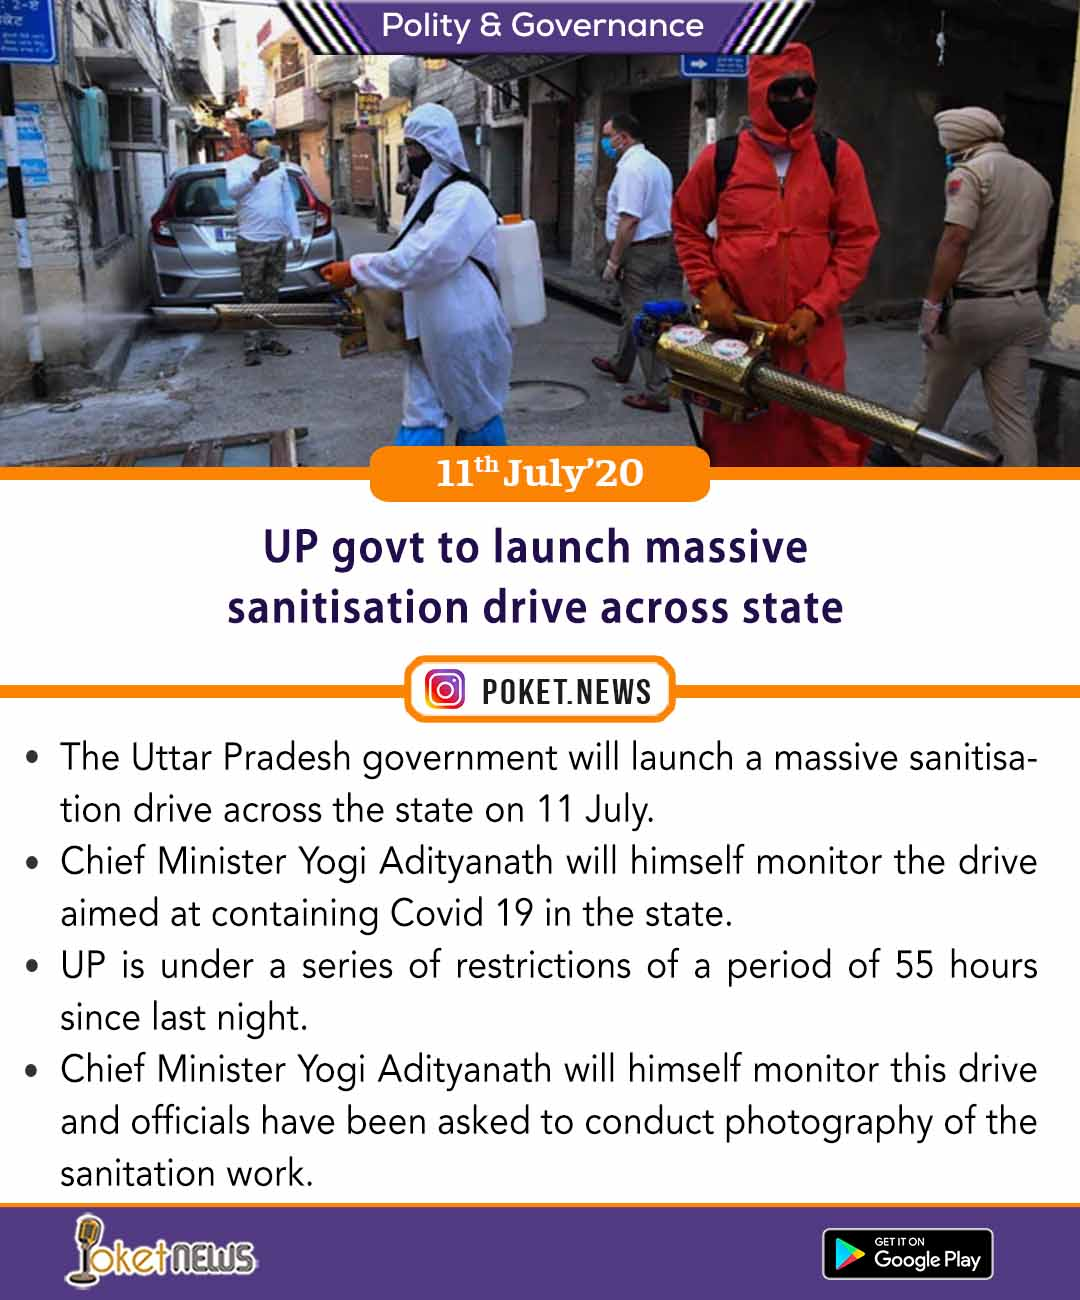 UP govt to launch massive sanitisation drive across state